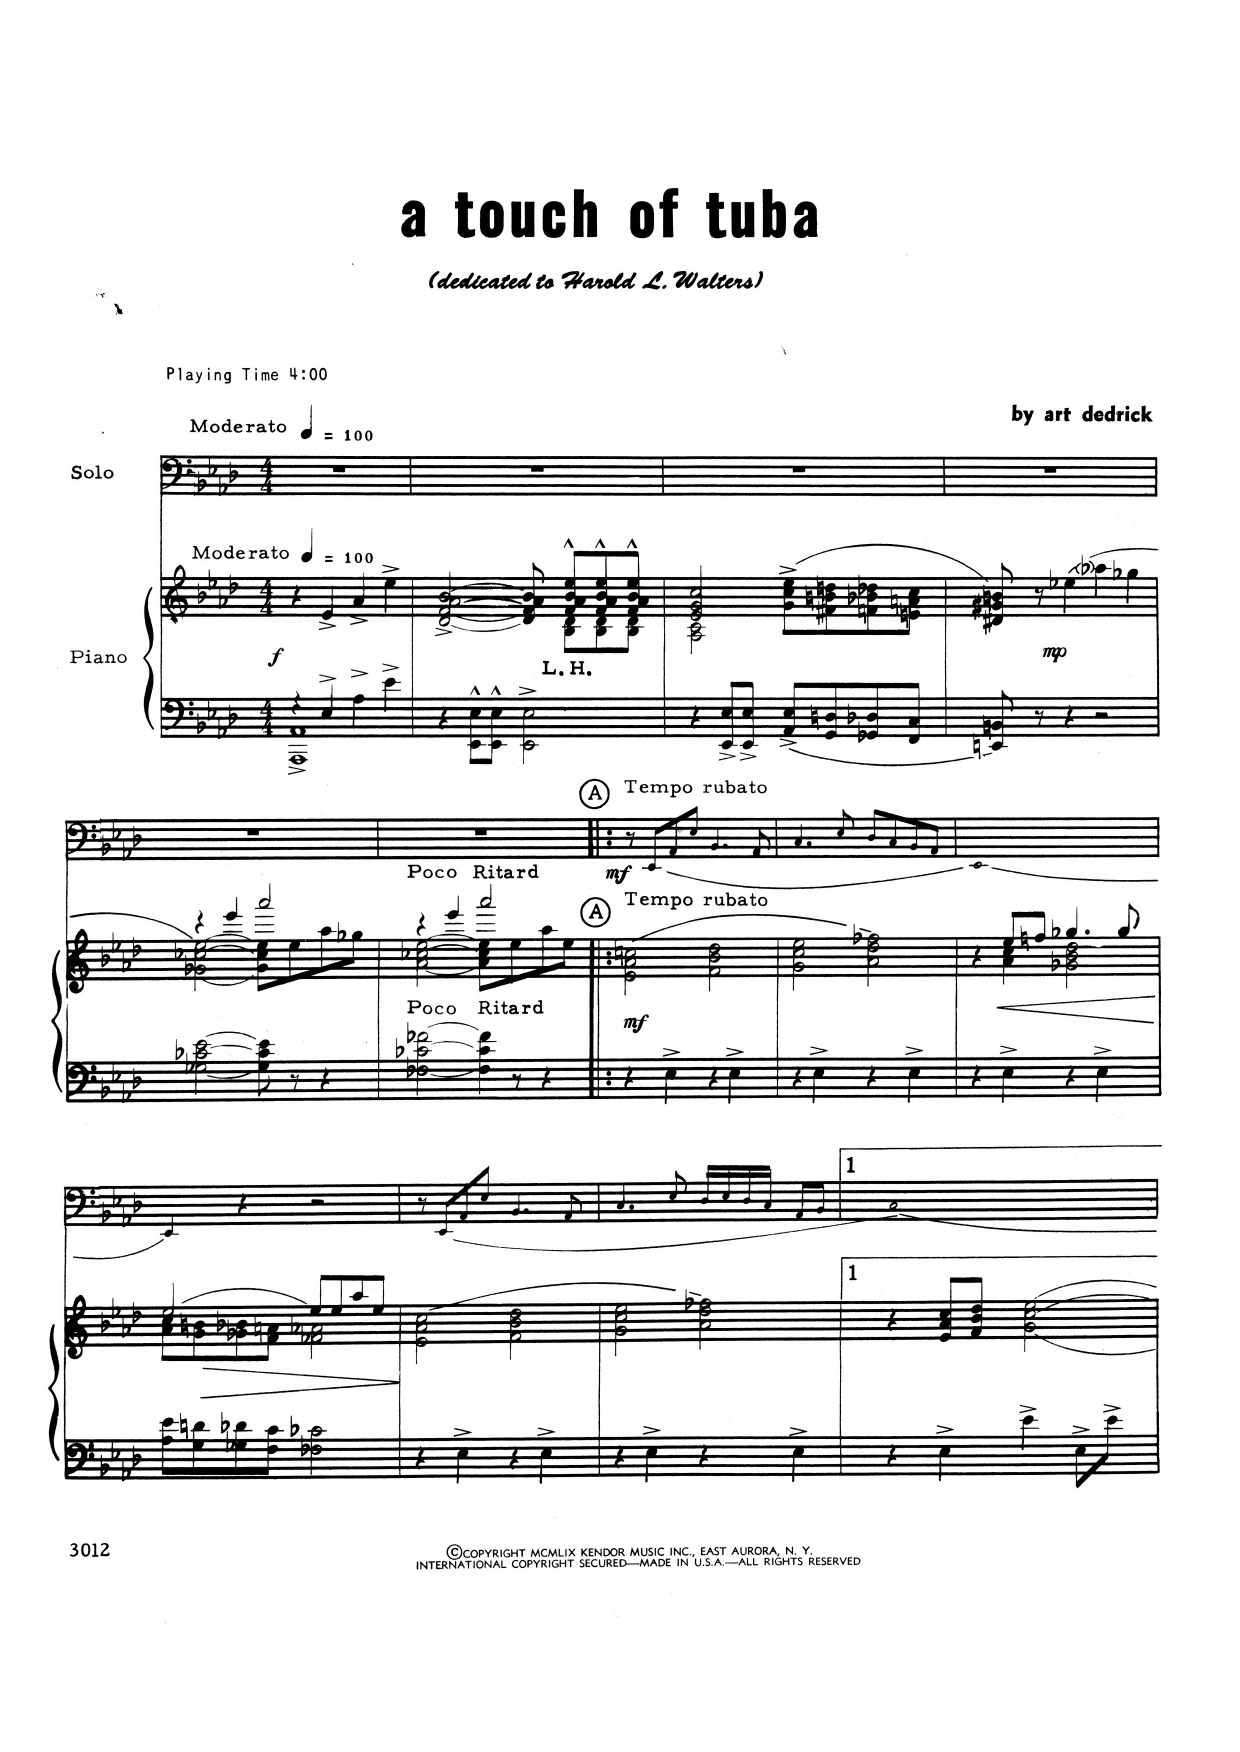 Art Dedrick A Touch Of Tuba - Piano Accompaniment sheet music notes and chords. Download Printable PDF.